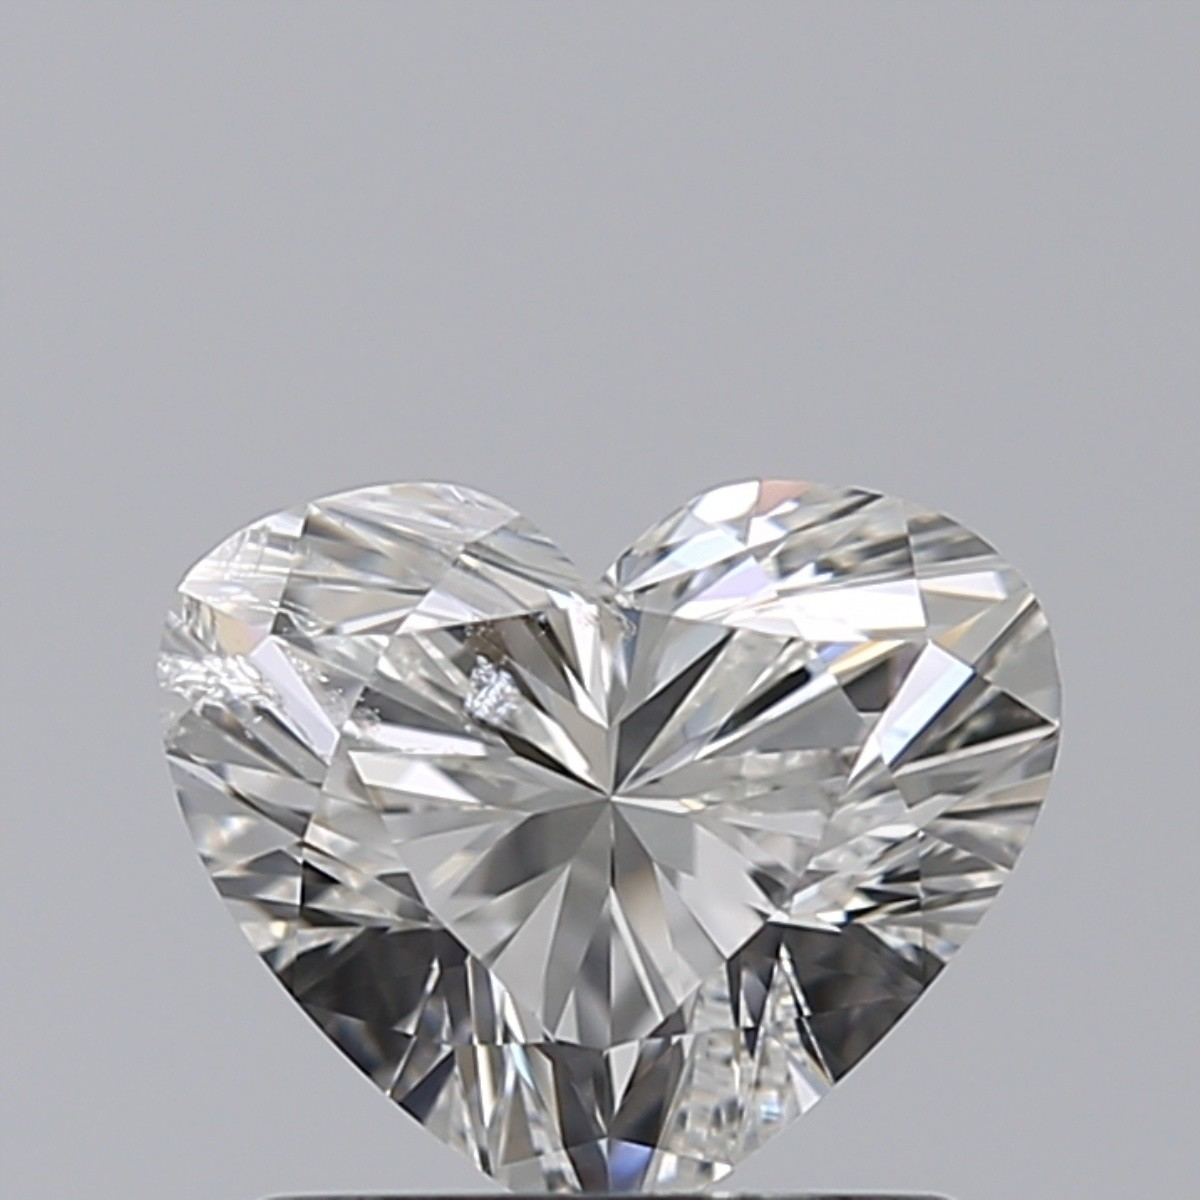 1.01 Carat Heart Diamond (G/SI2)